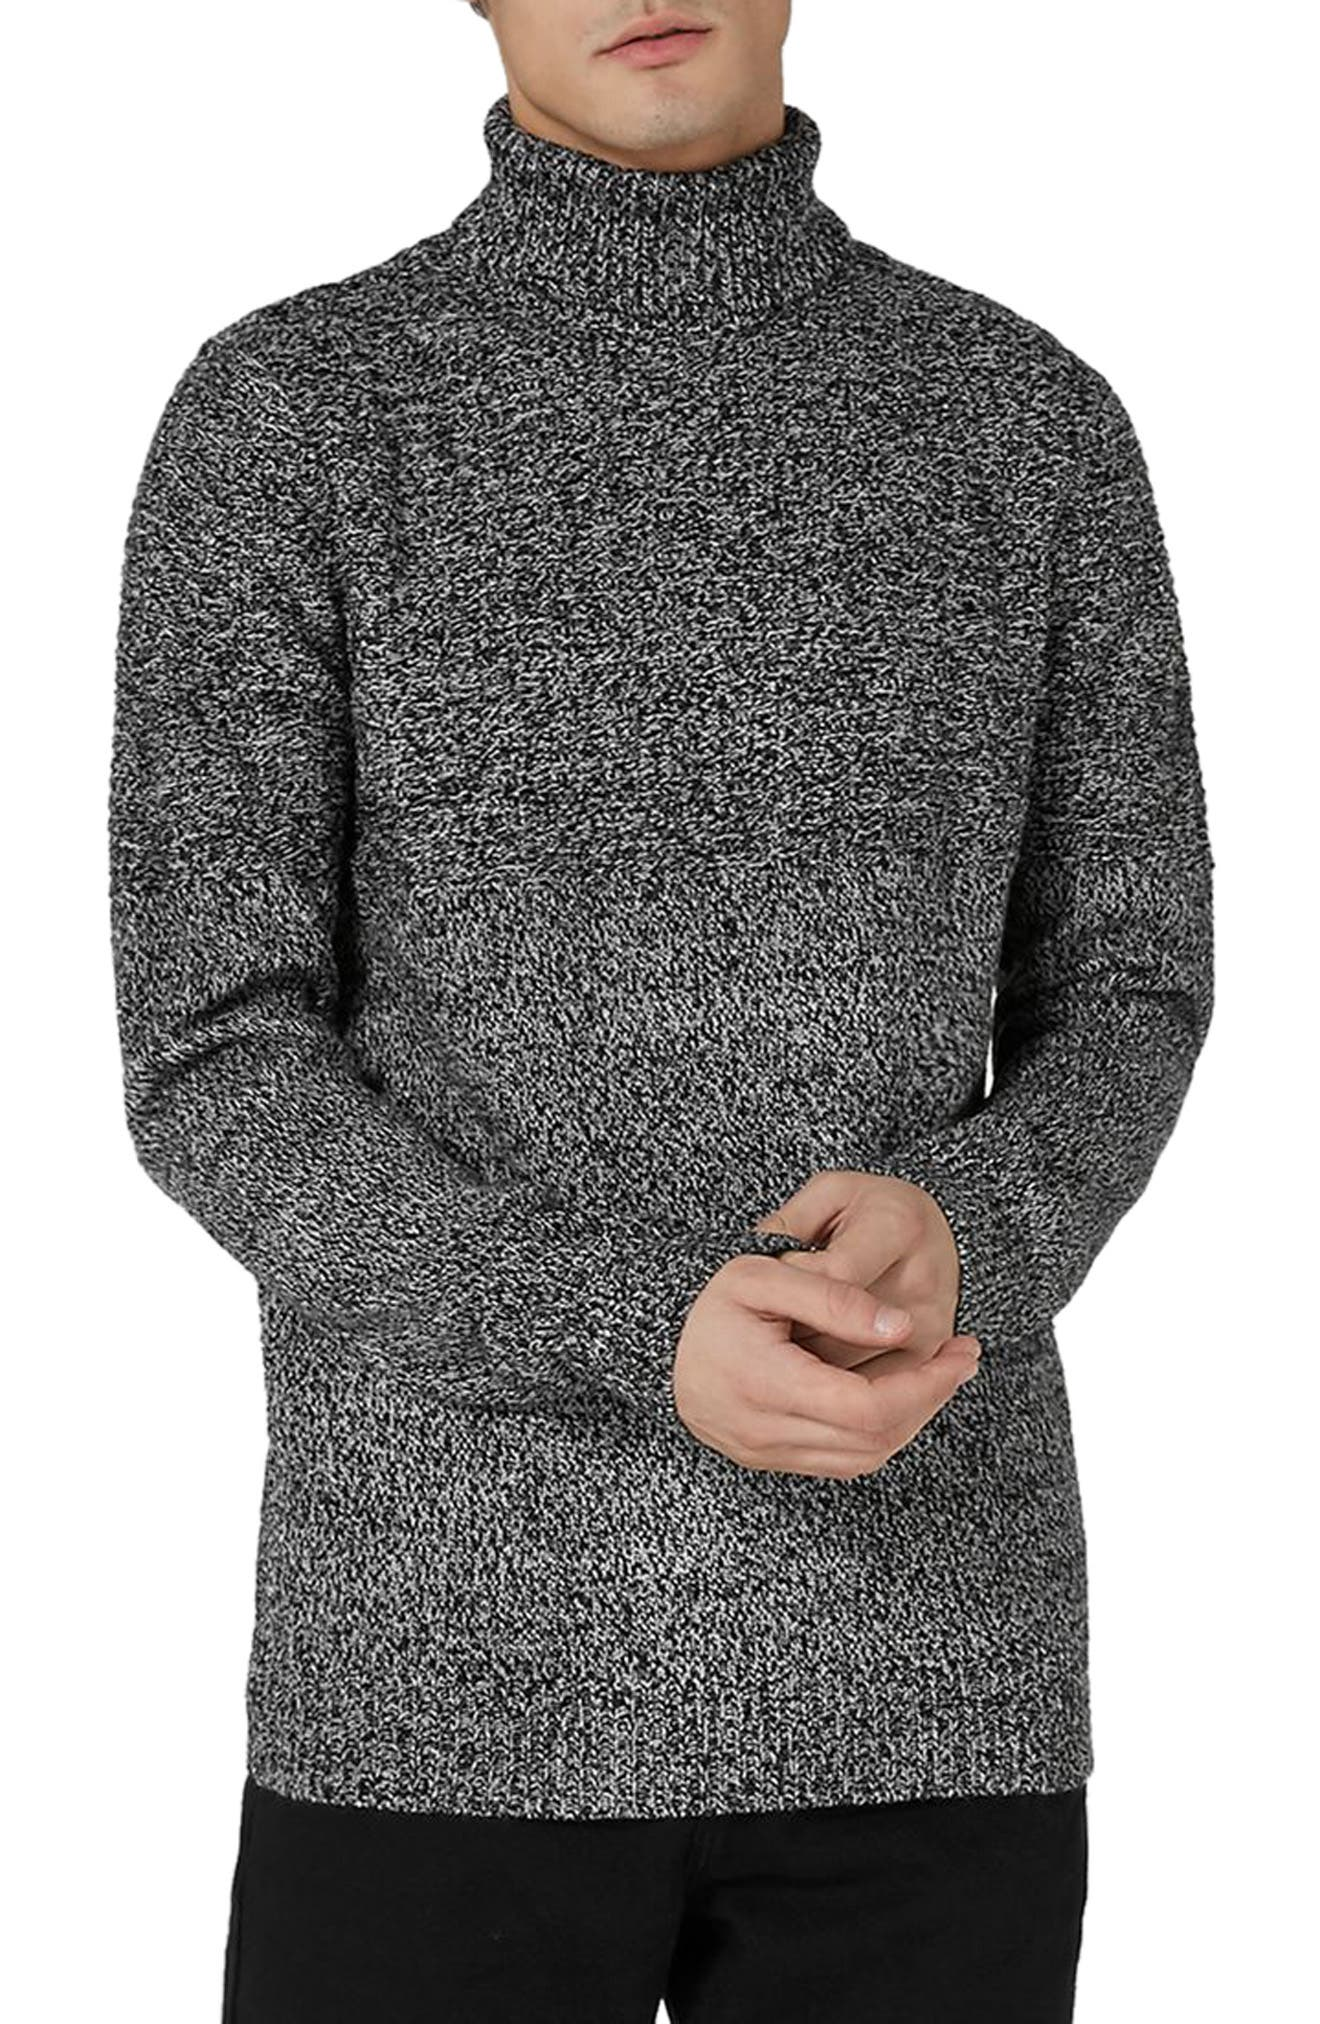 Alternate Image 1 Selected - Topman Twist Roll Neck Sweater